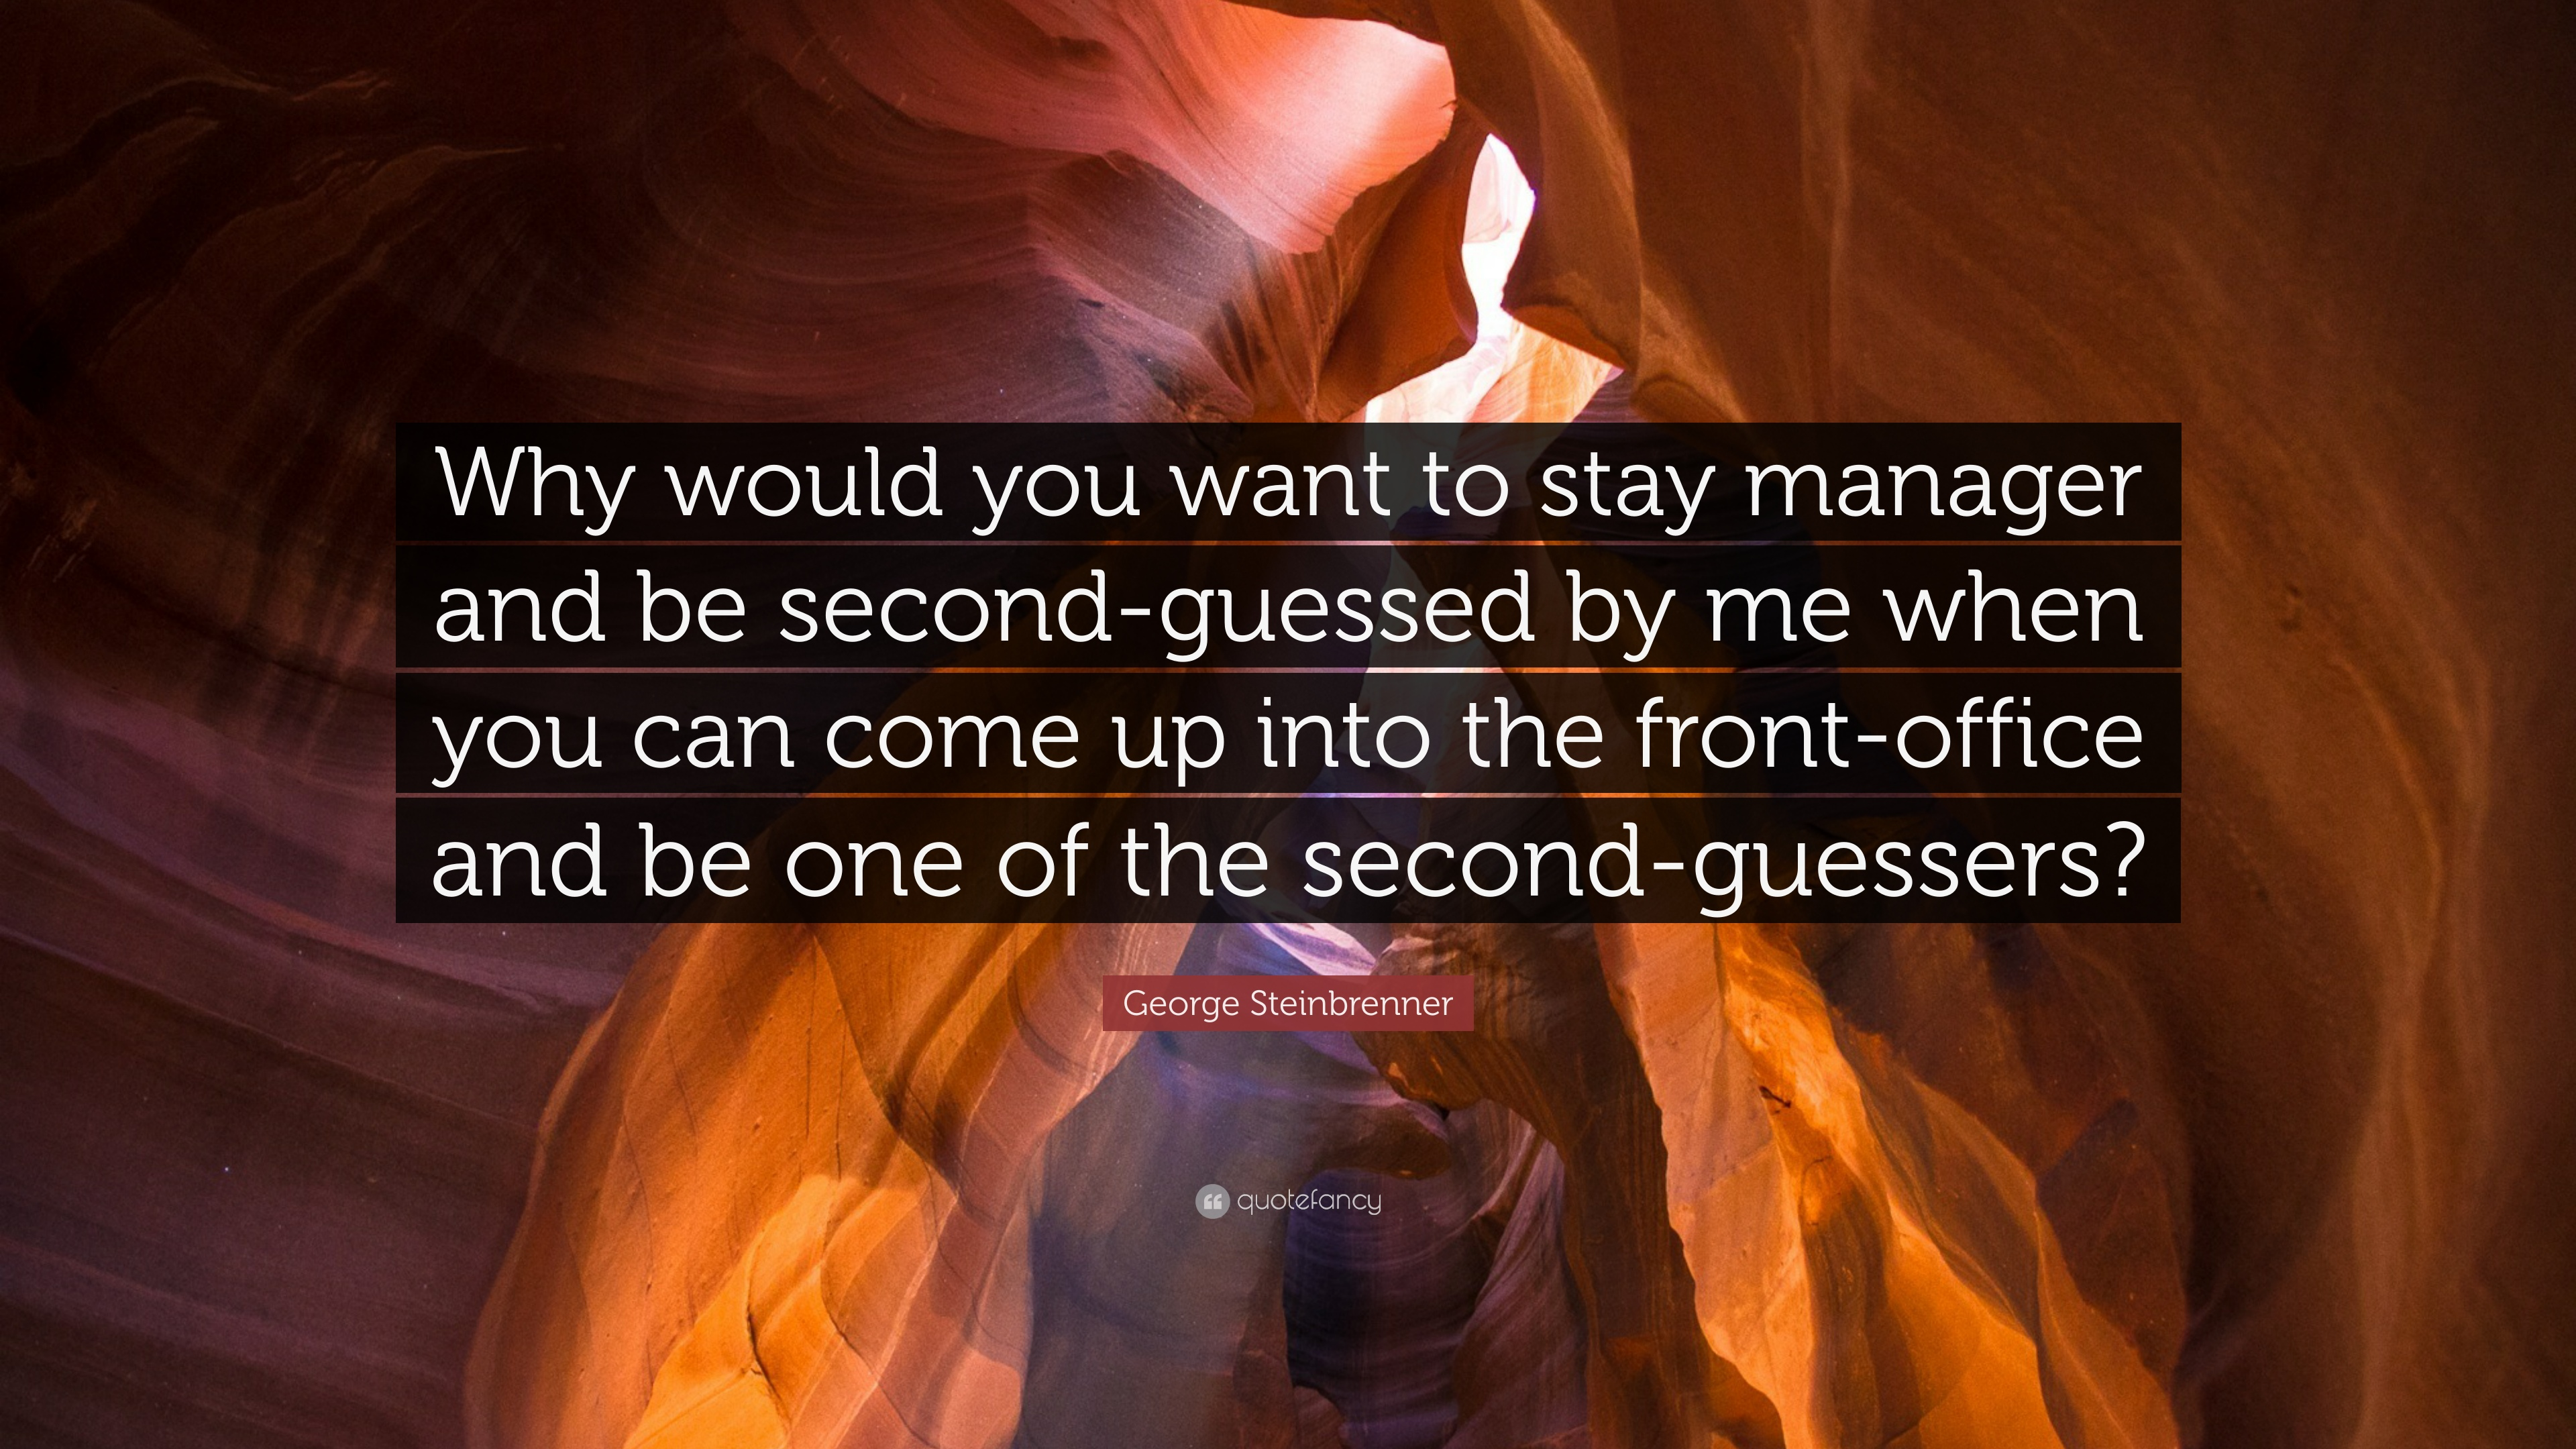 george steinbrenner quote why would you want to stay manager and george steinbrenner quote why would you want to stay manager and be second